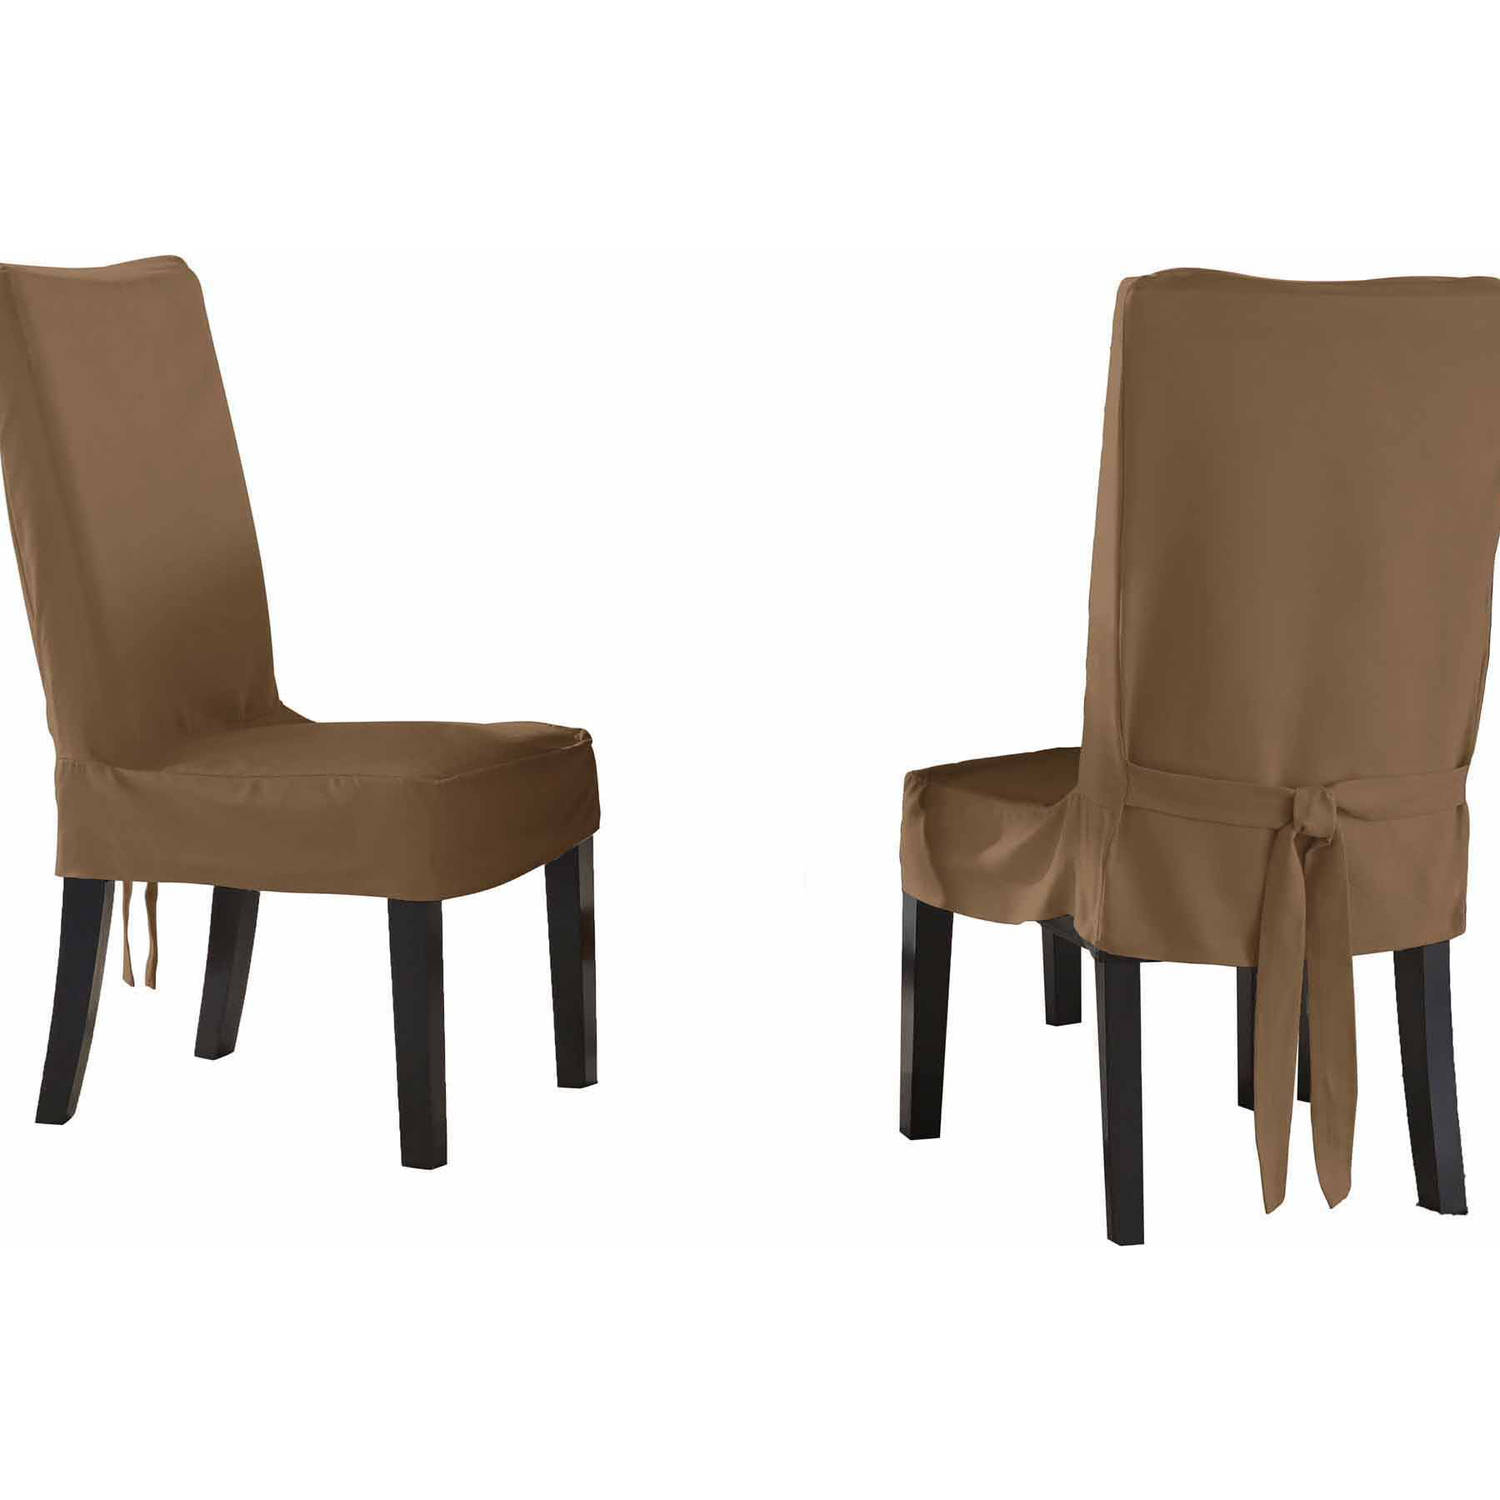 parsons chairs with skirt folding quad chair menards serta relaxed fit smooth suede furniture slipcover 2 pack dining short walmart com